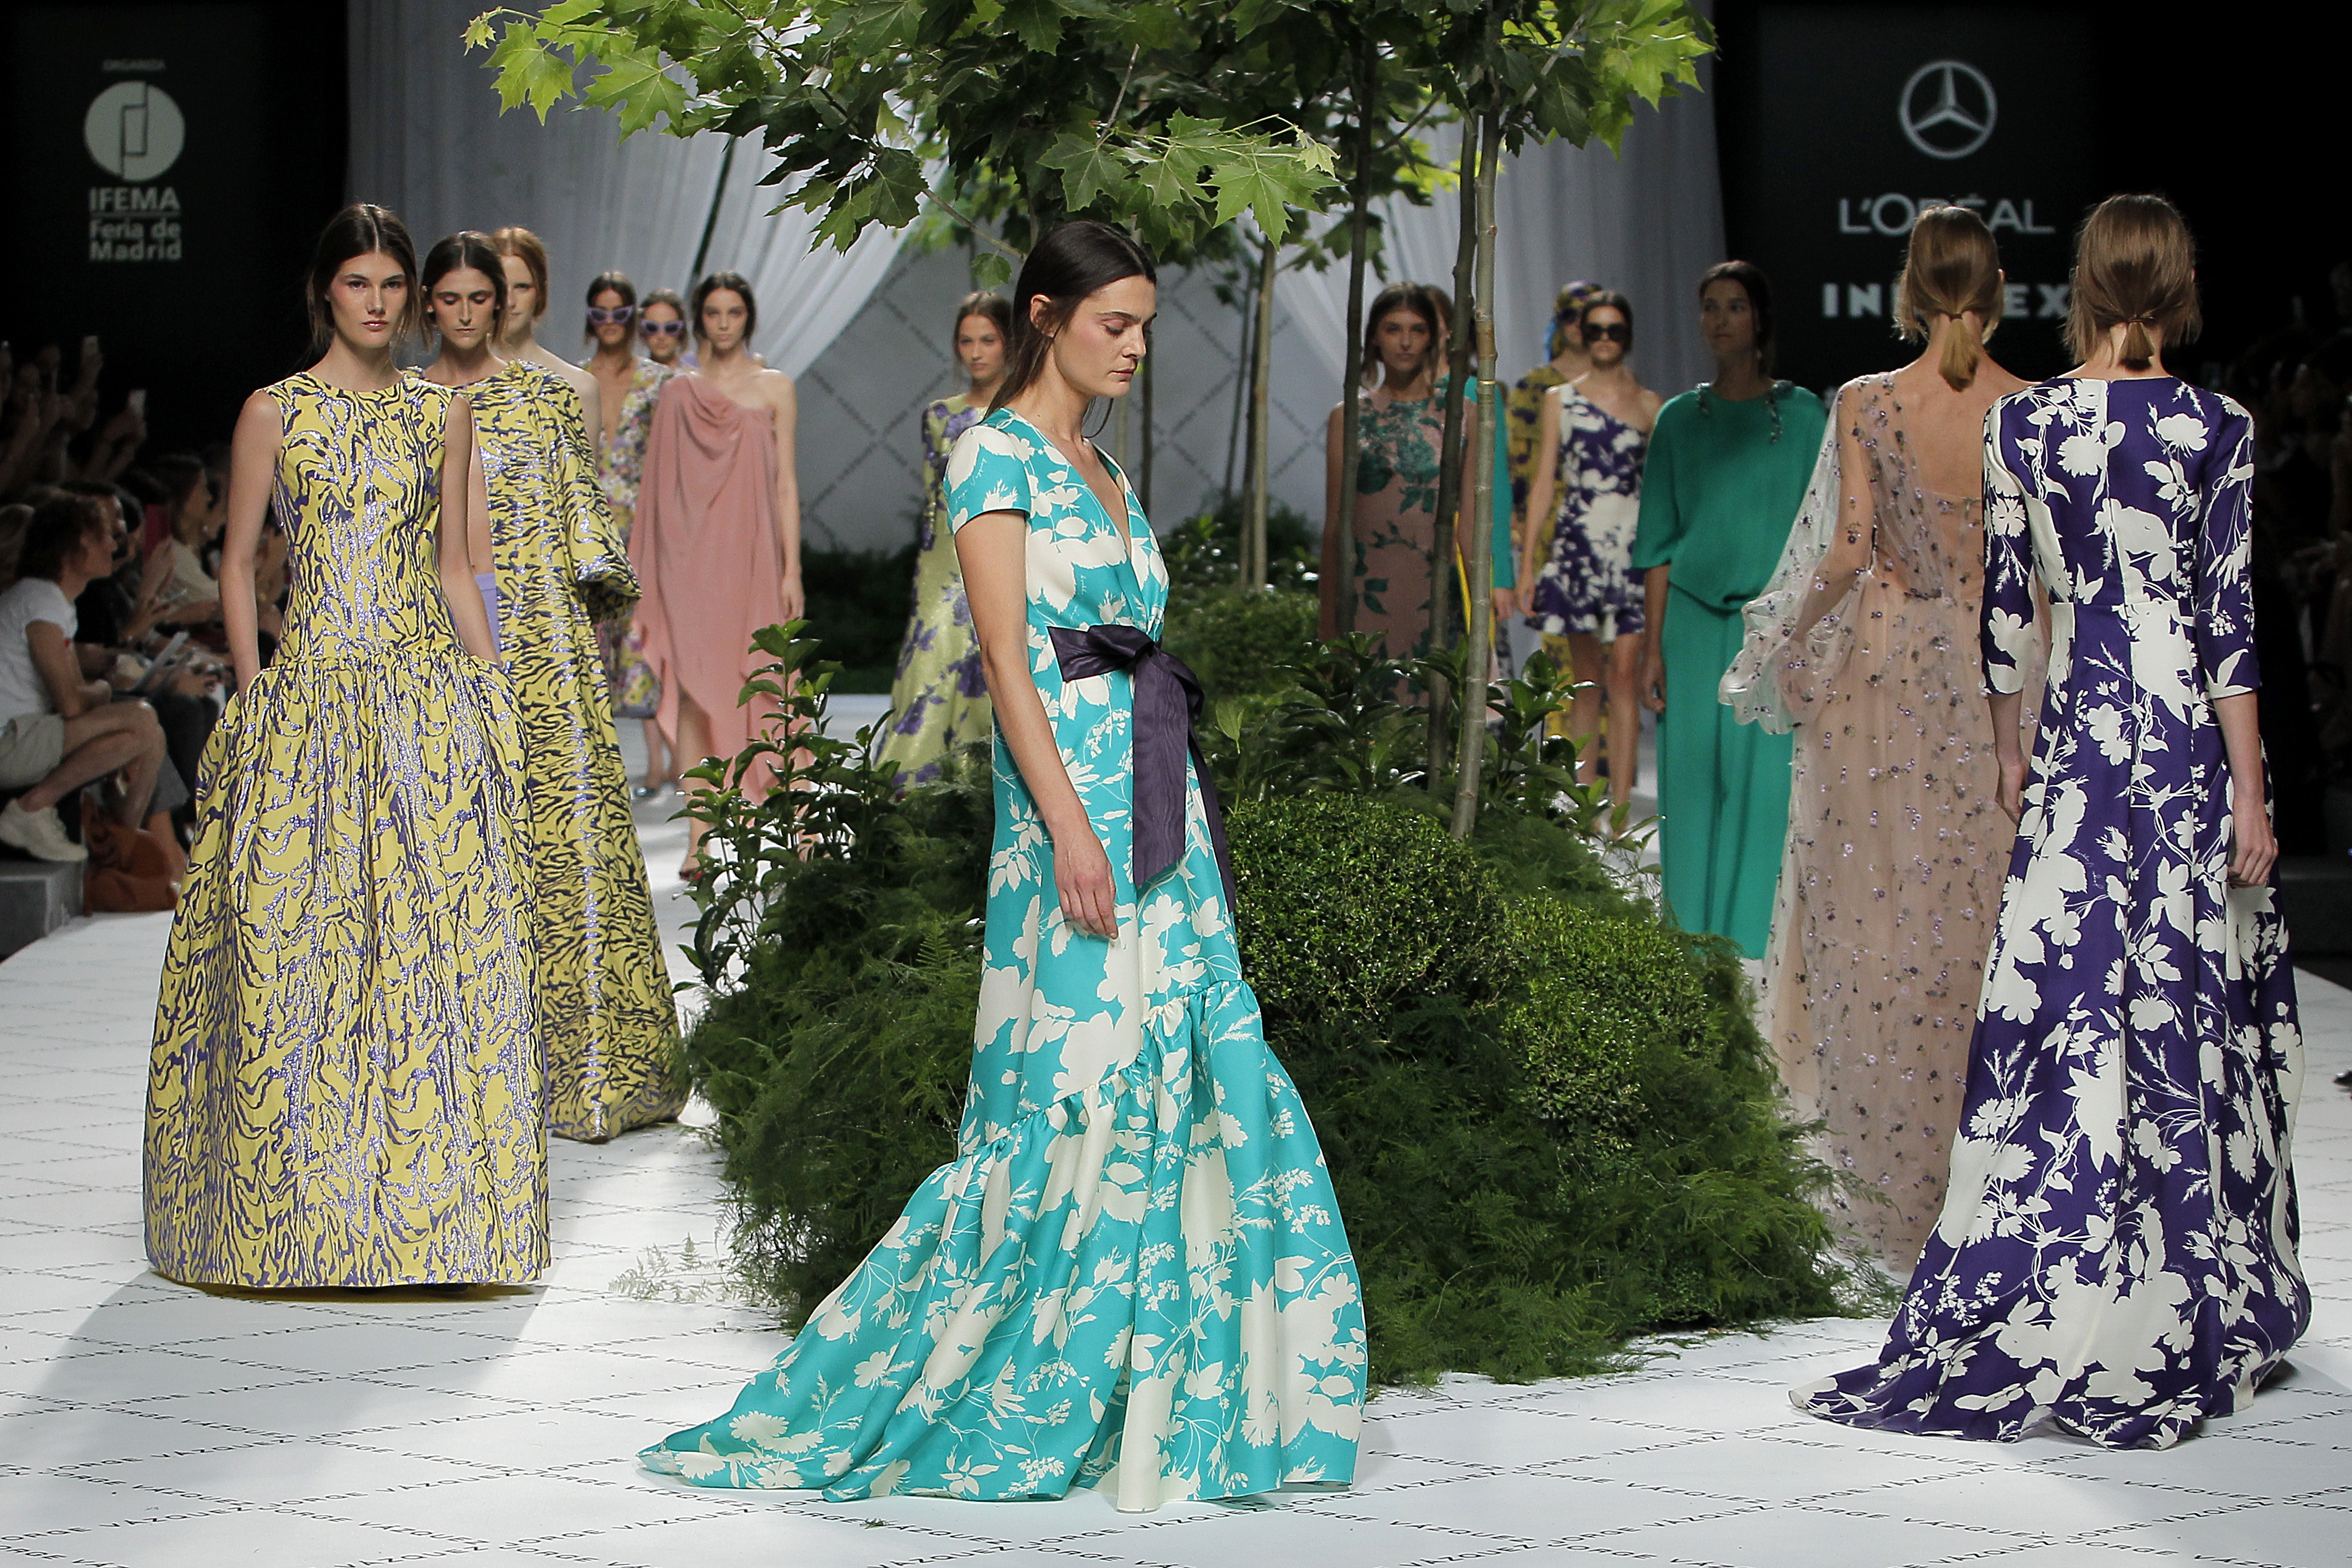 La Mercedes Benz Fashion Week clausura su 68º edición